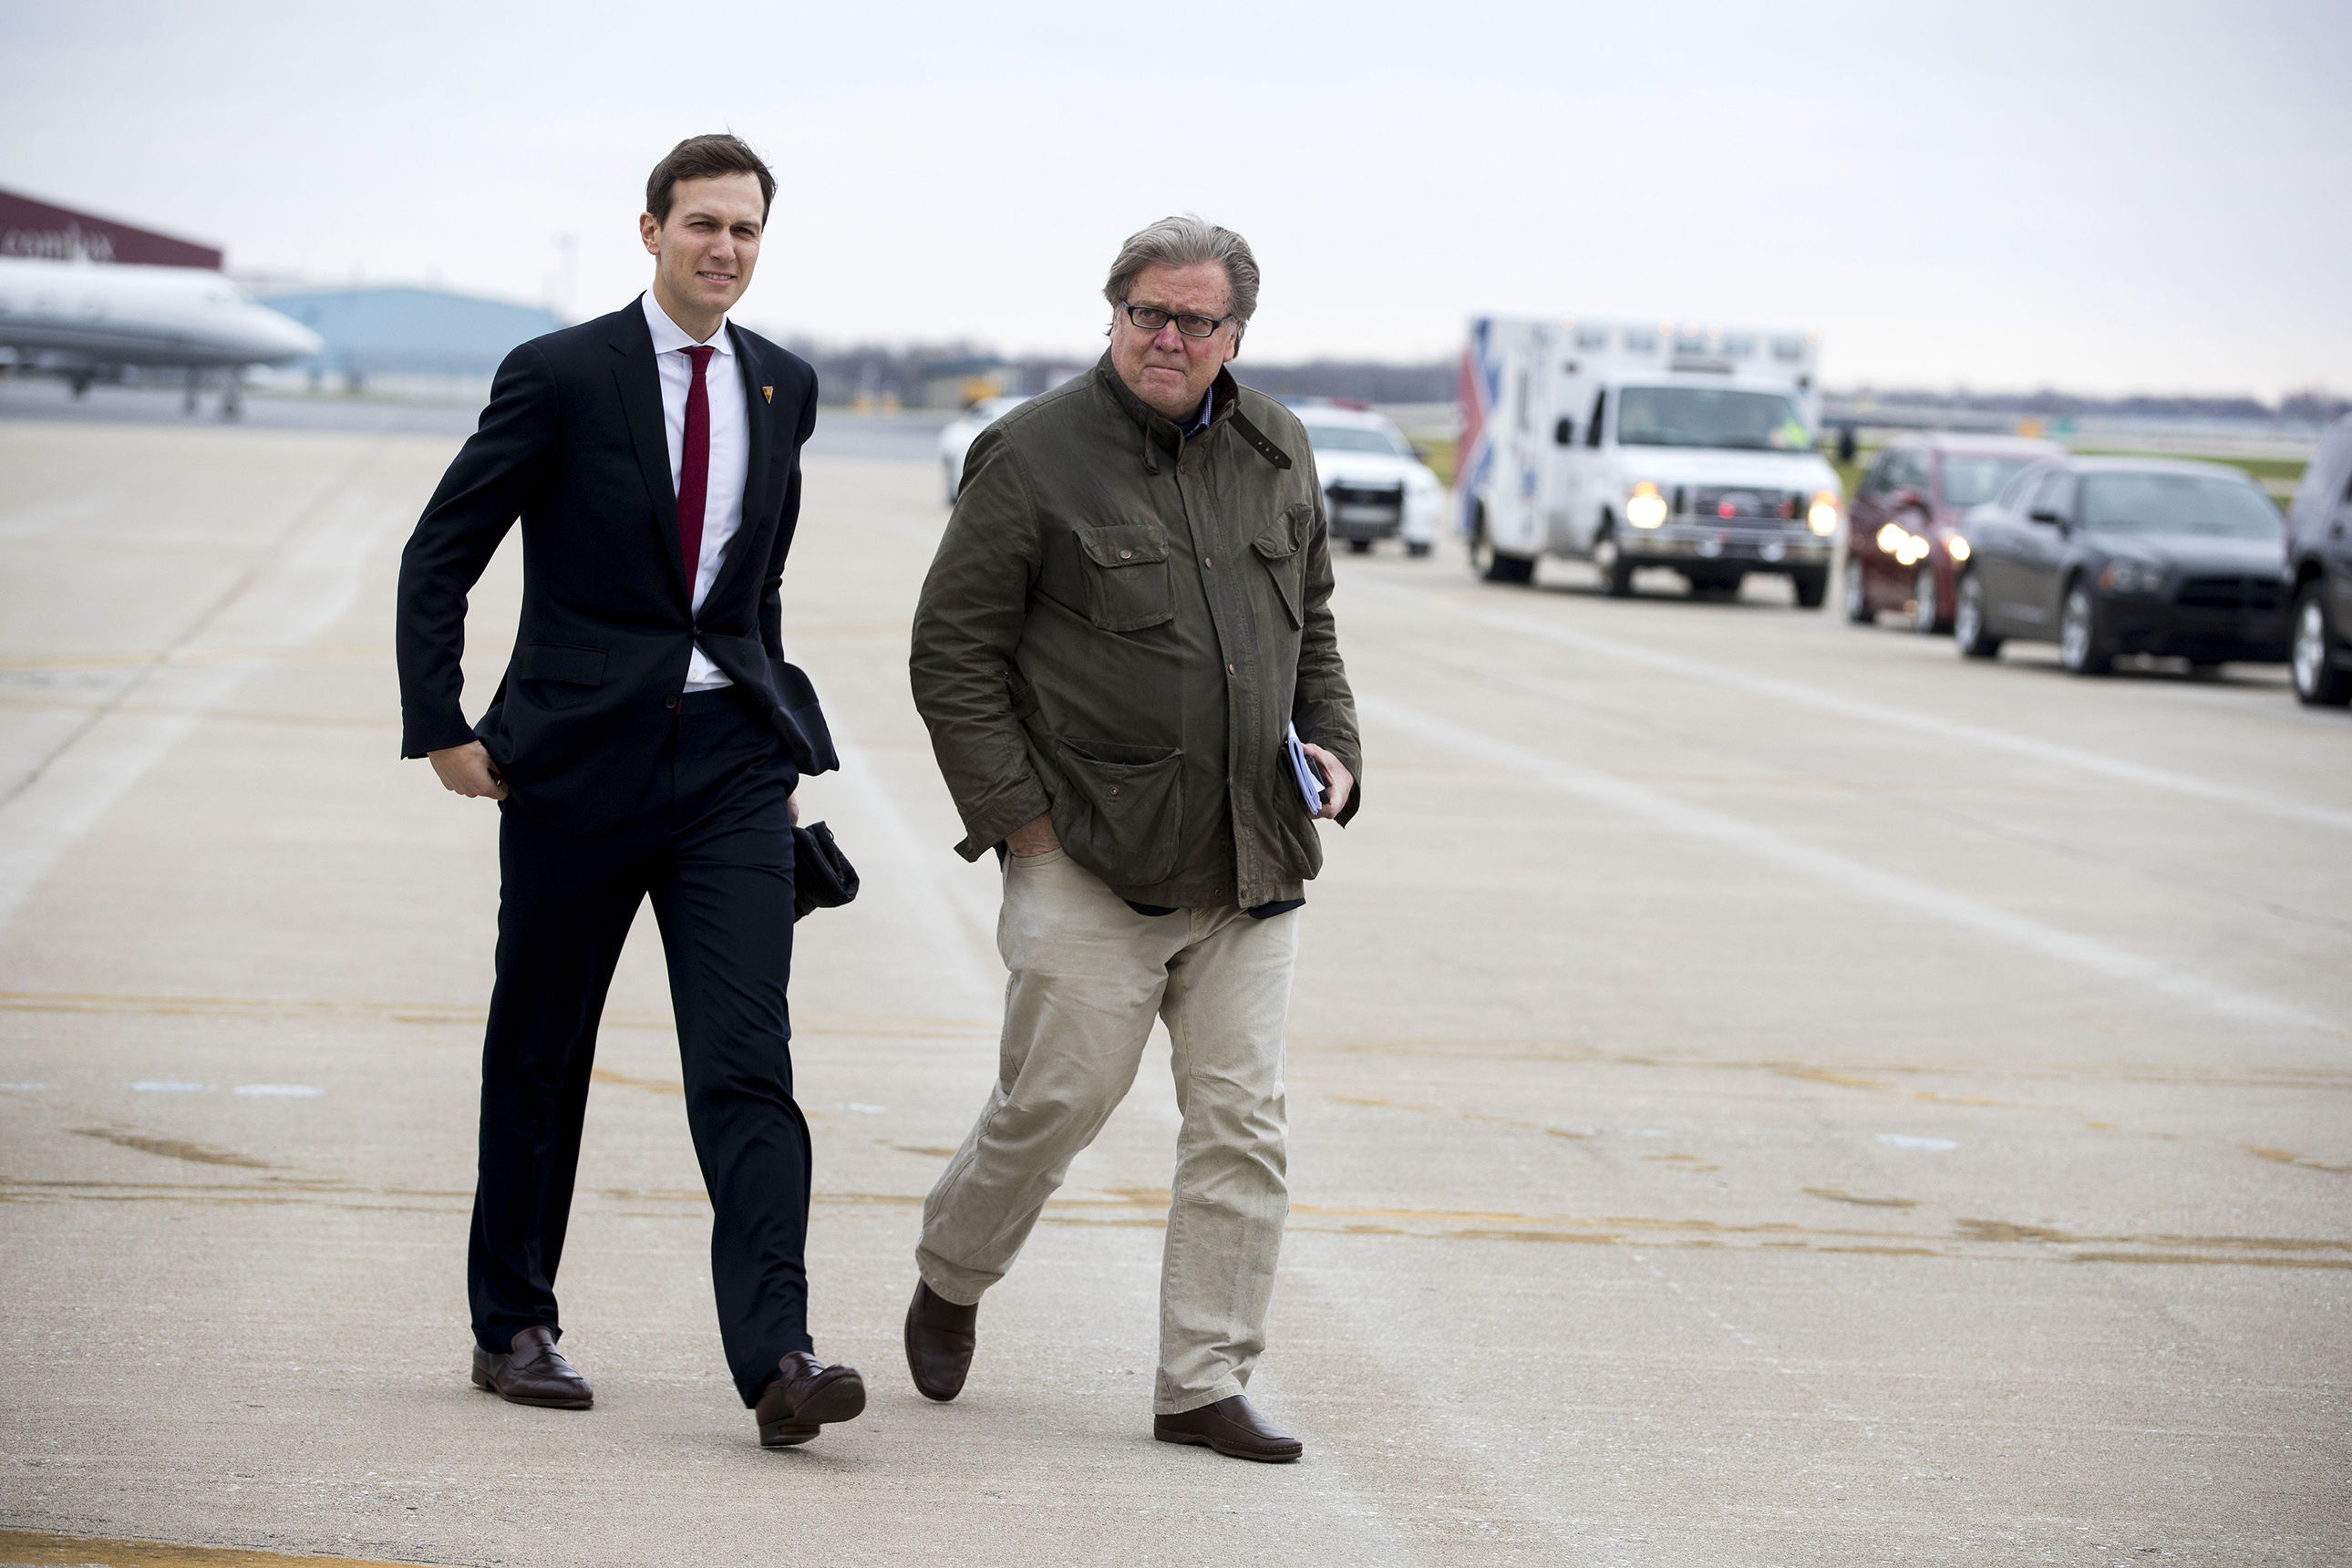 Steve Bannon, right, then a senior strategist for President-elect Donald Trump, and Jared Kushner, Trump's son-in-law, arrive in Indianapolis, for a rally, Dec. 1, 2016.